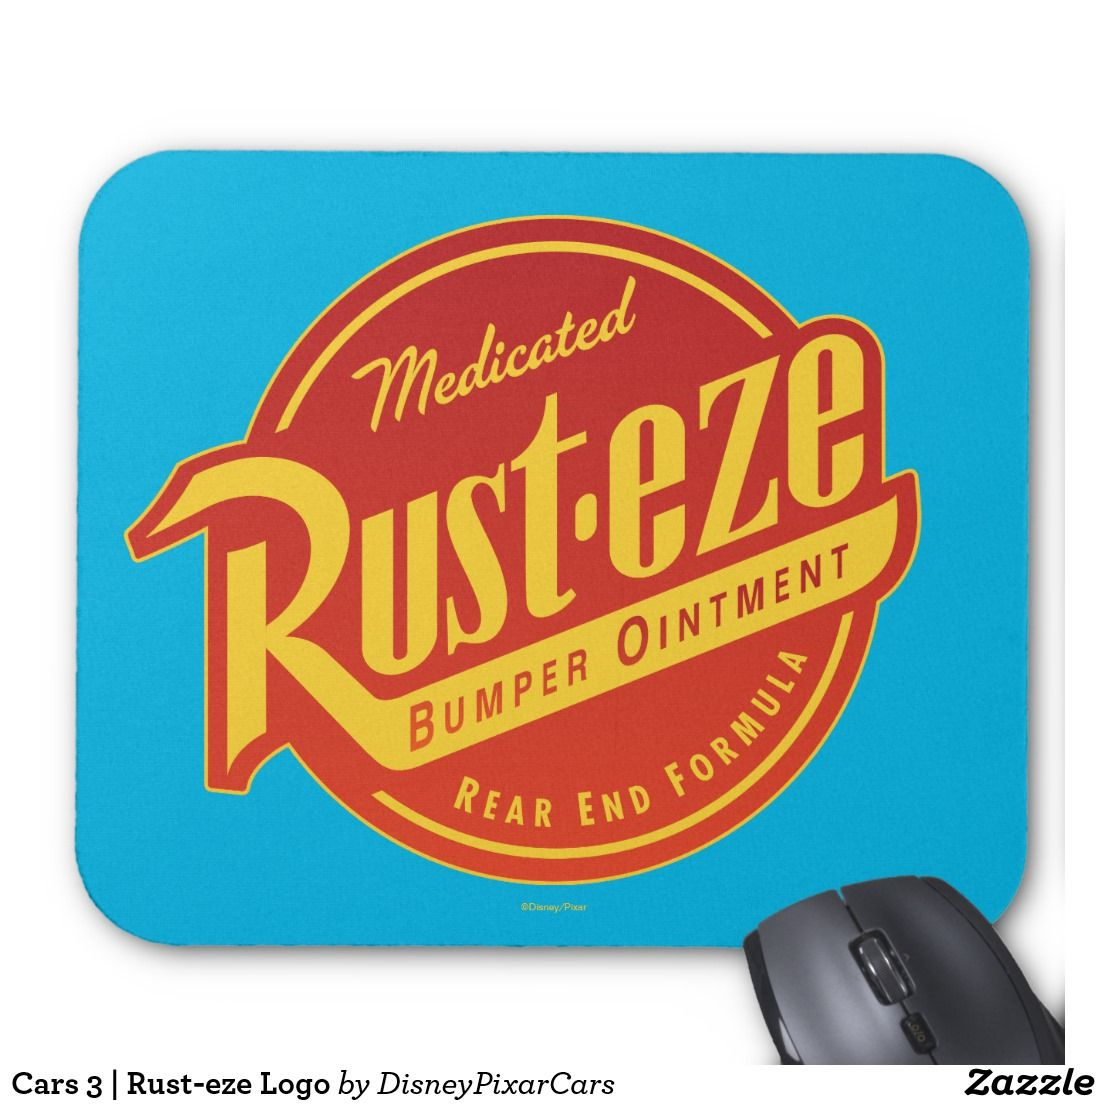 Color printing bu - Mouse Pad Cars 3 Rust Eze Logo Great Gift For The Movie Fan Dimensions 9 25 L X 7 75 W High Quality Full Color Printing Durable And Dust